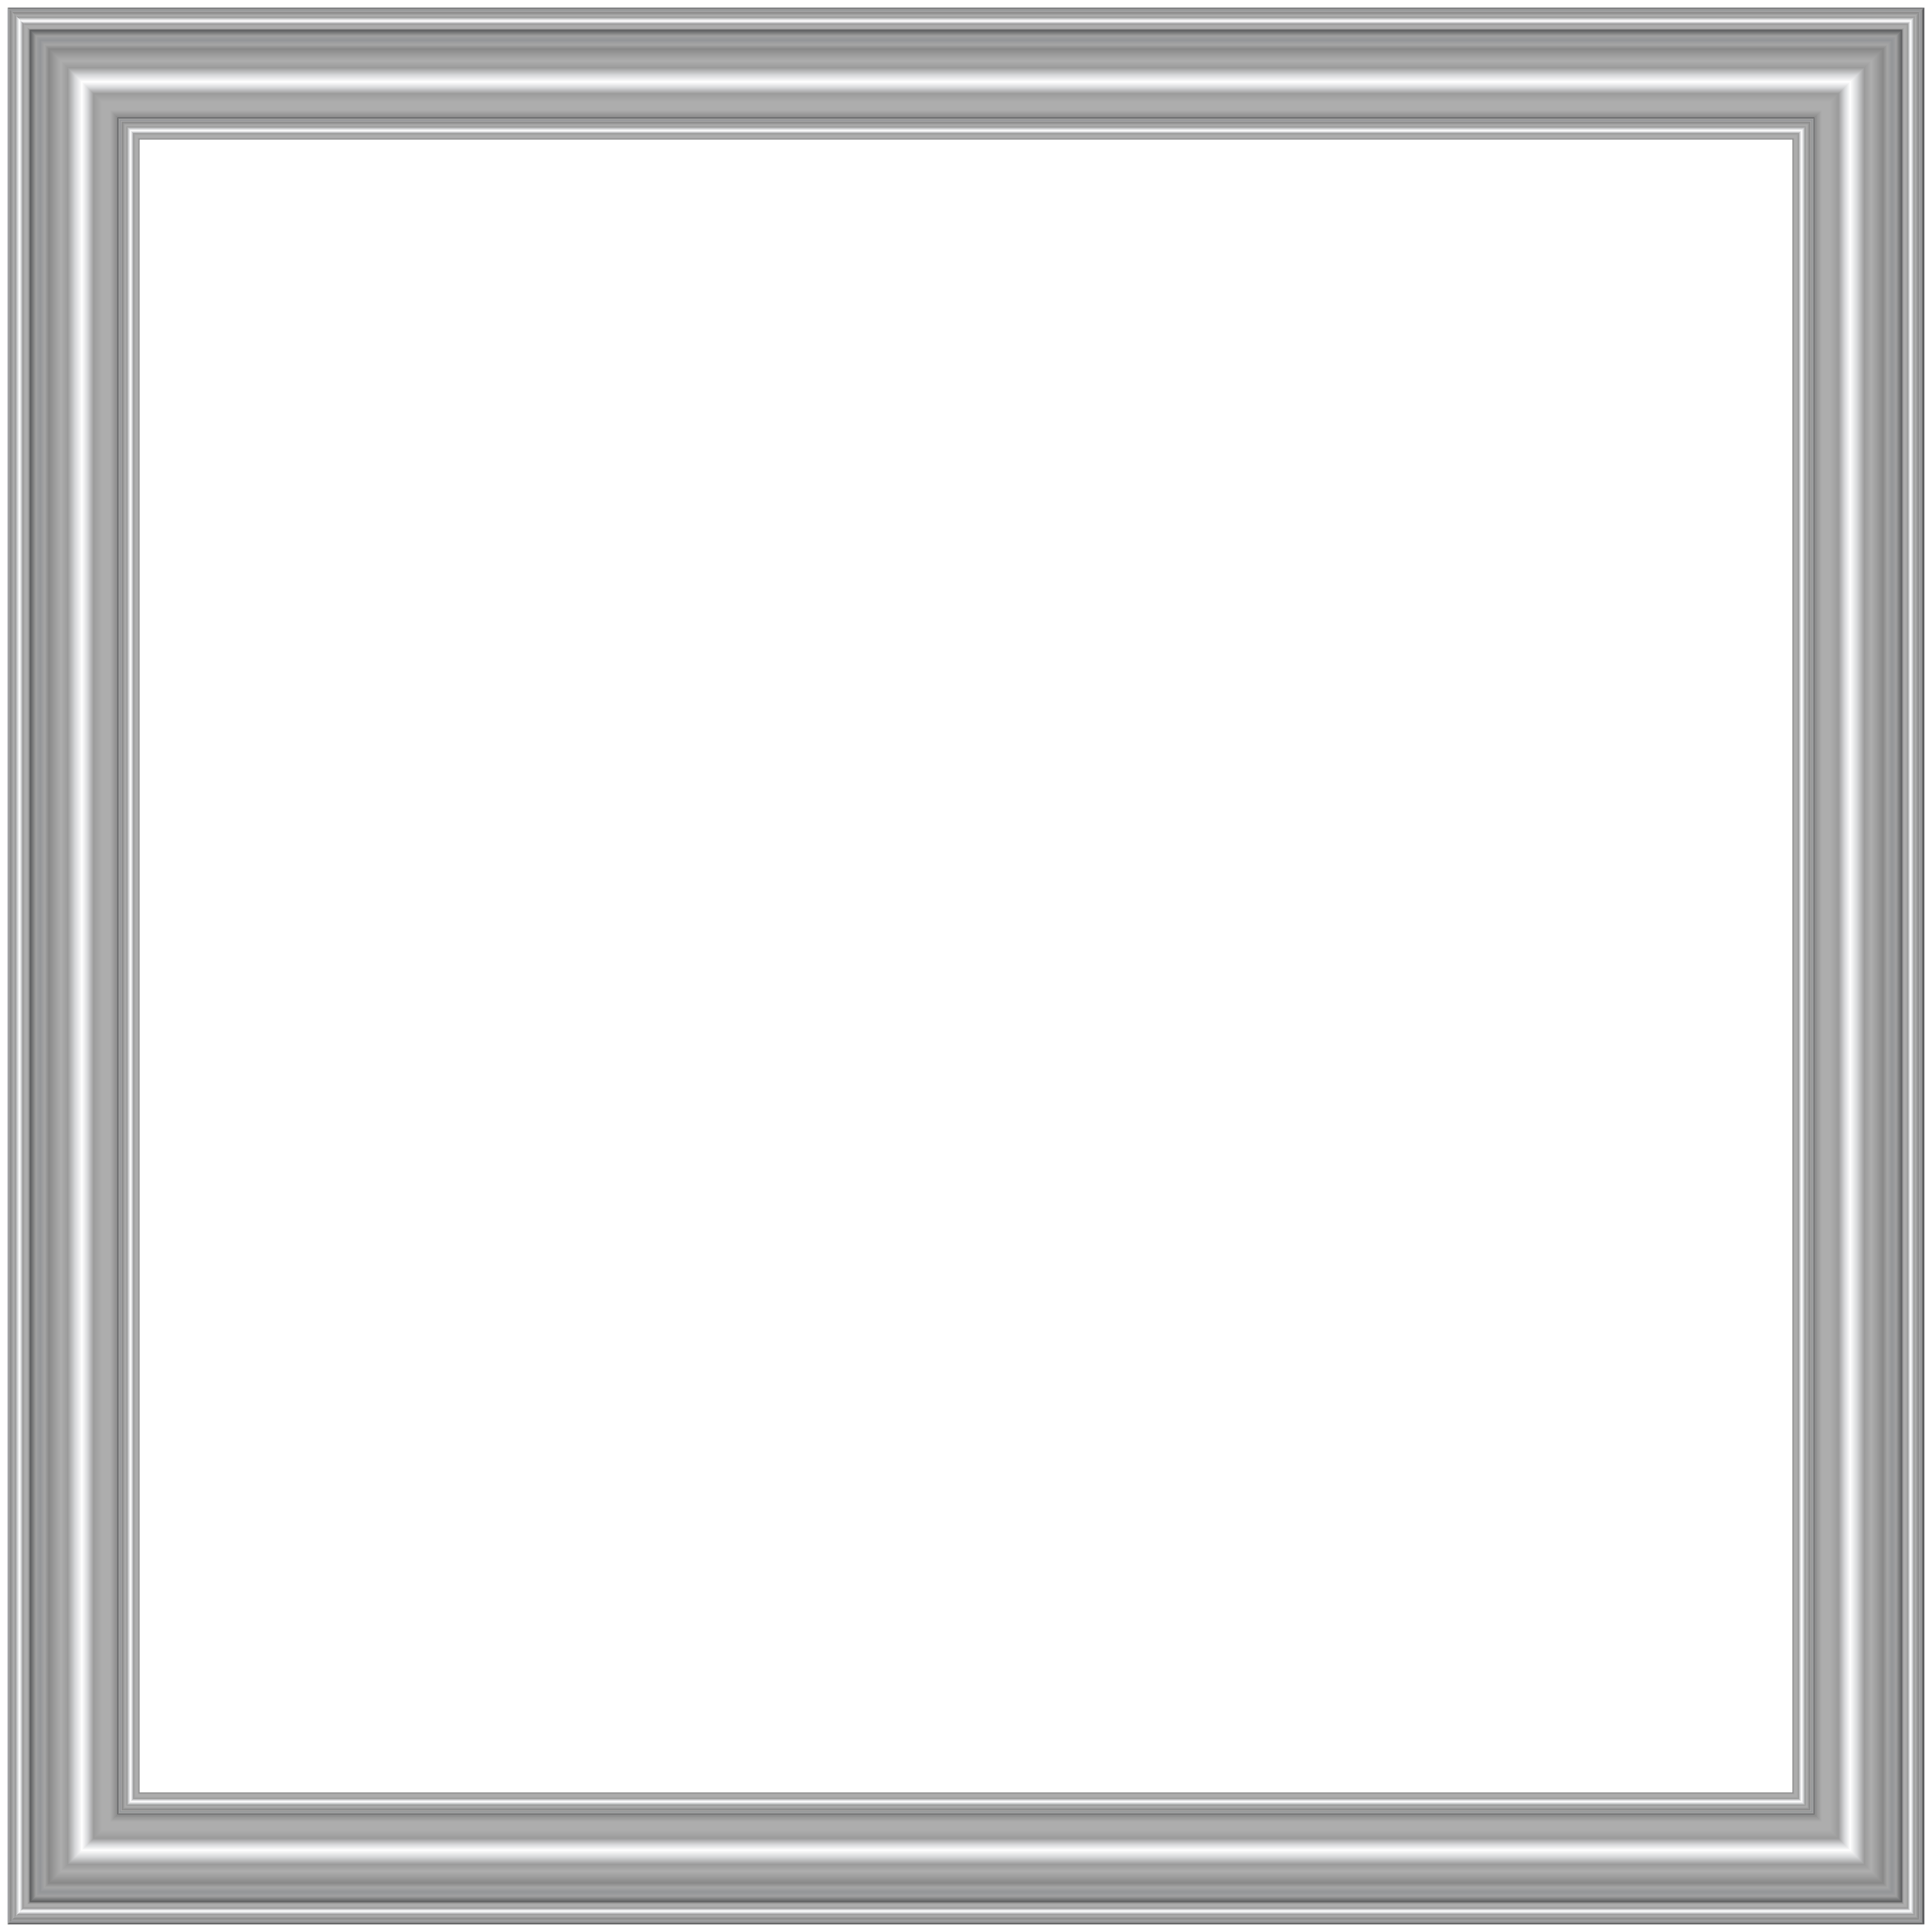 Picture Frames Decorative Arts Photo Frame Transparent Image And Clipart Green Screen Backdrop Muslin Backdrops Png